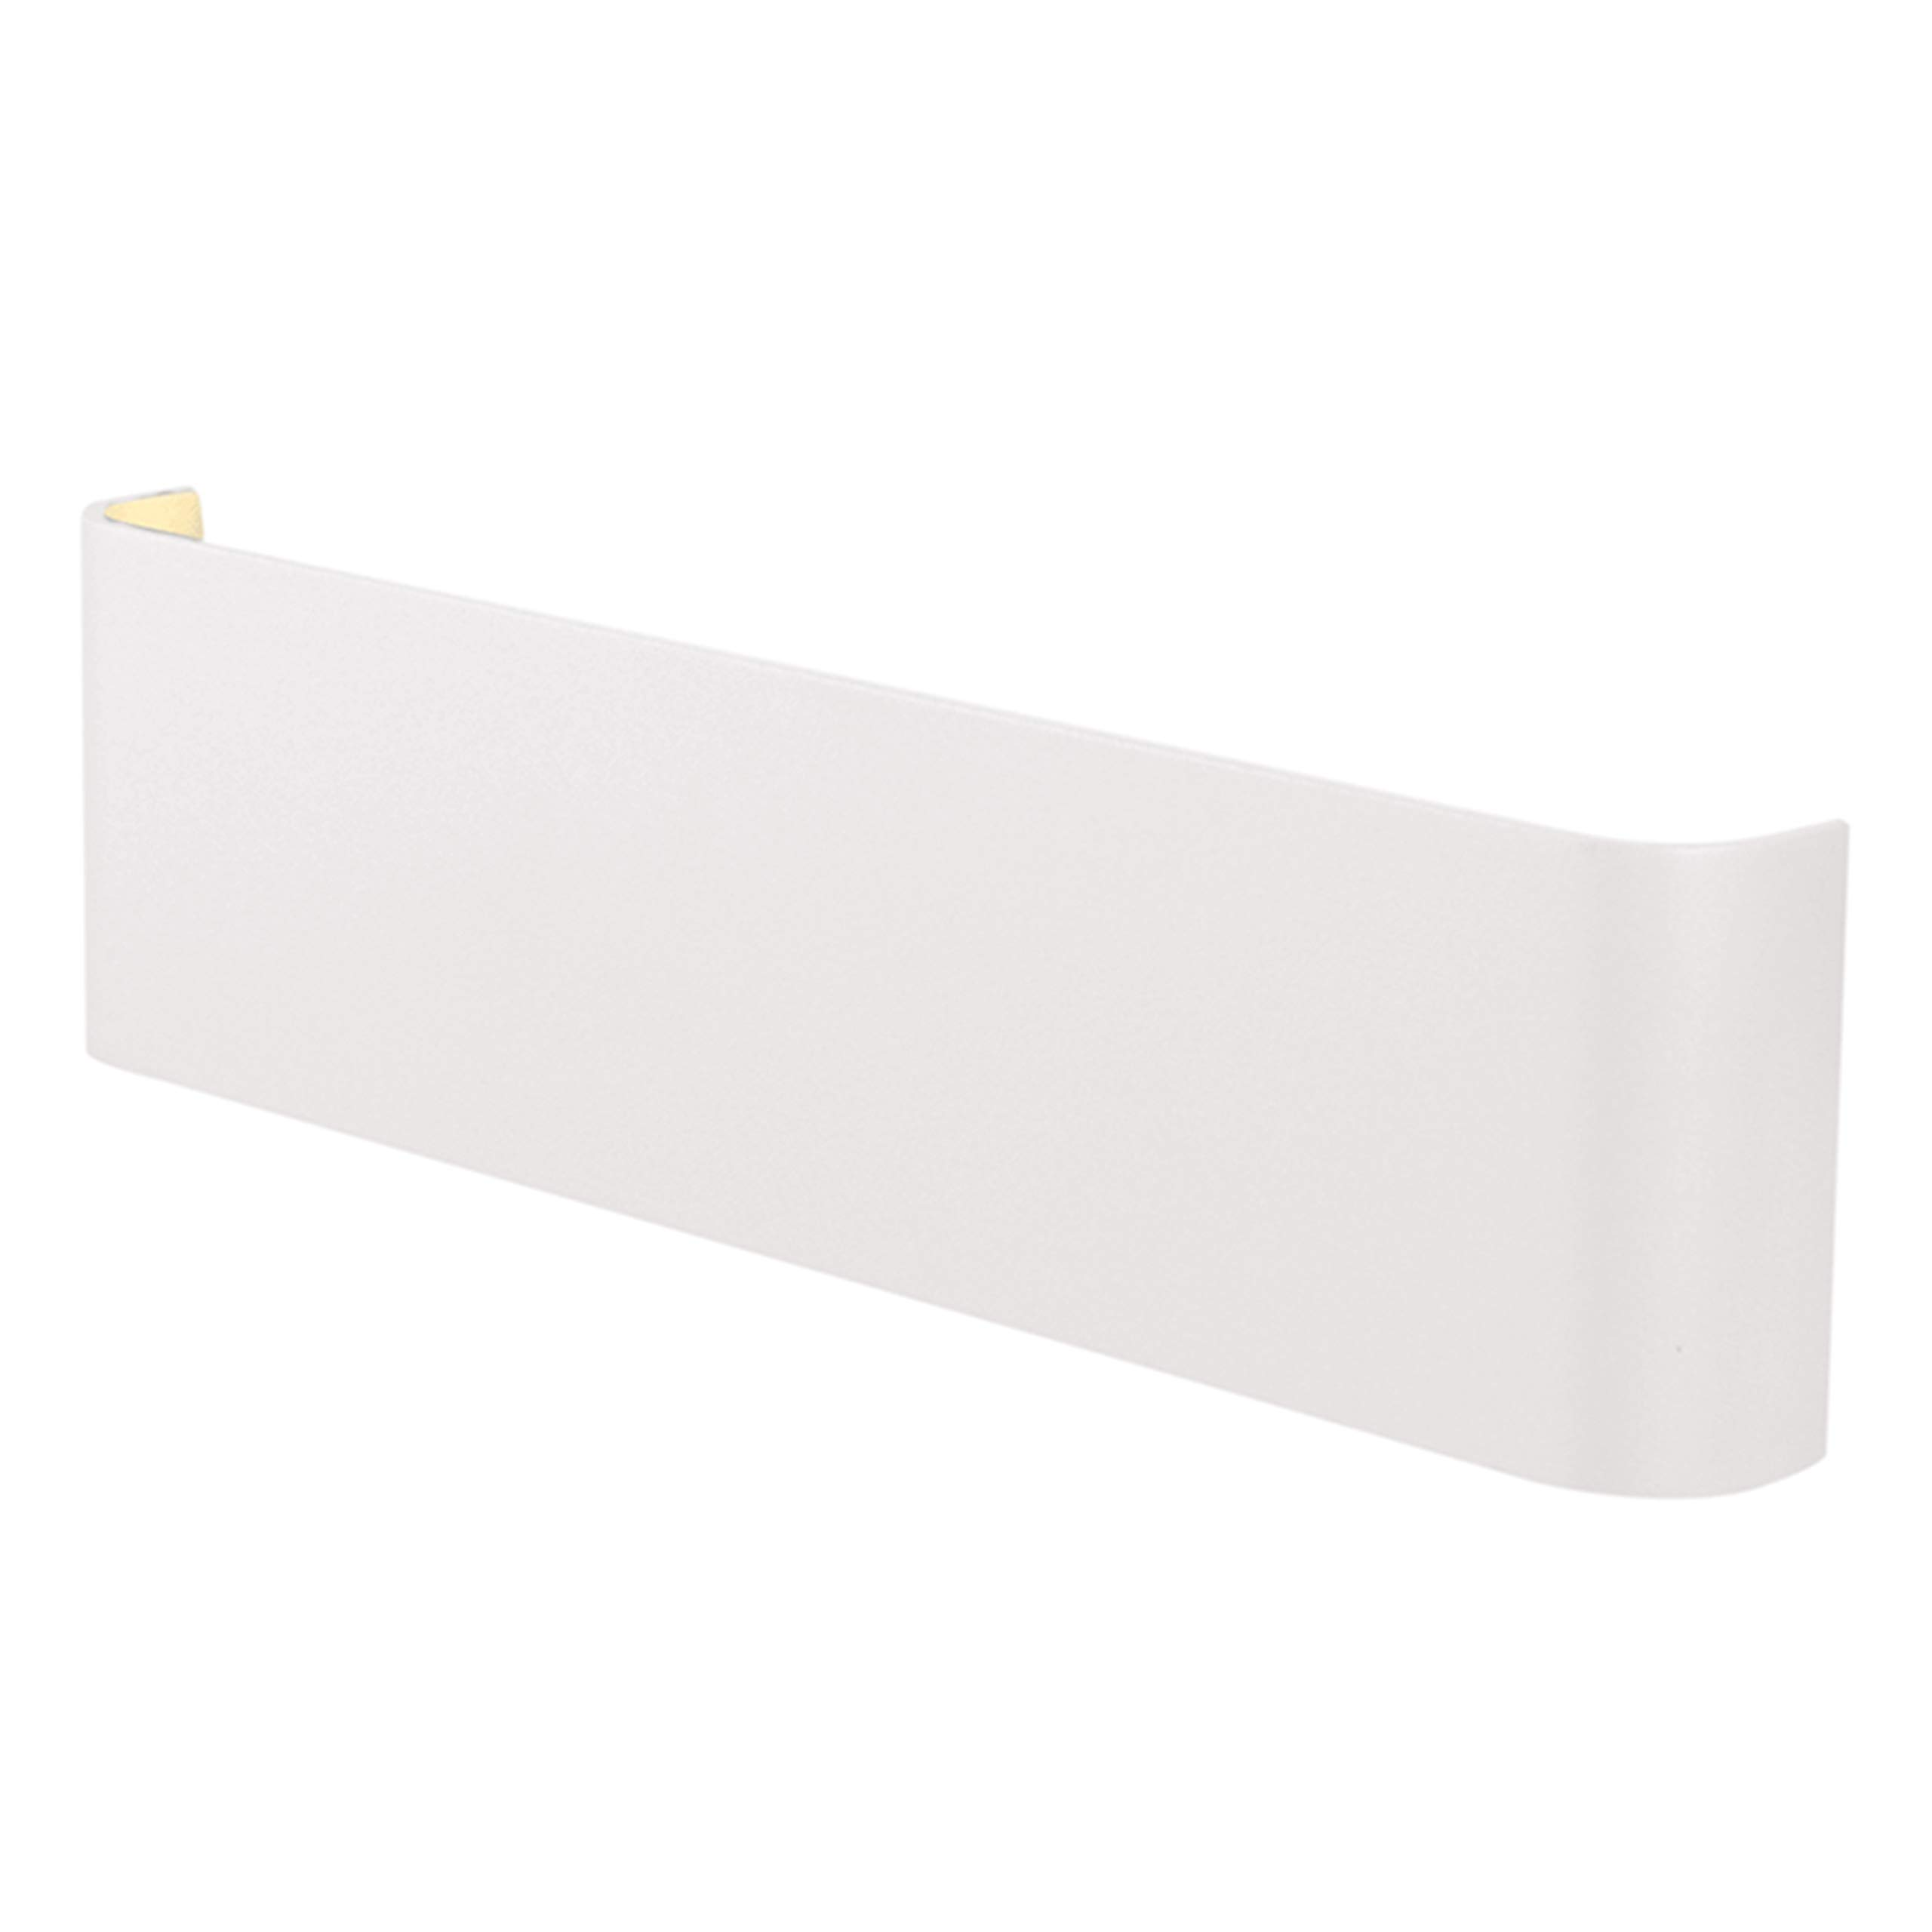 Lightess Modern Sconce Lighting 19W Up and Down LED Wall Lamp White 1 Light by LIGHTESS (Image #1)